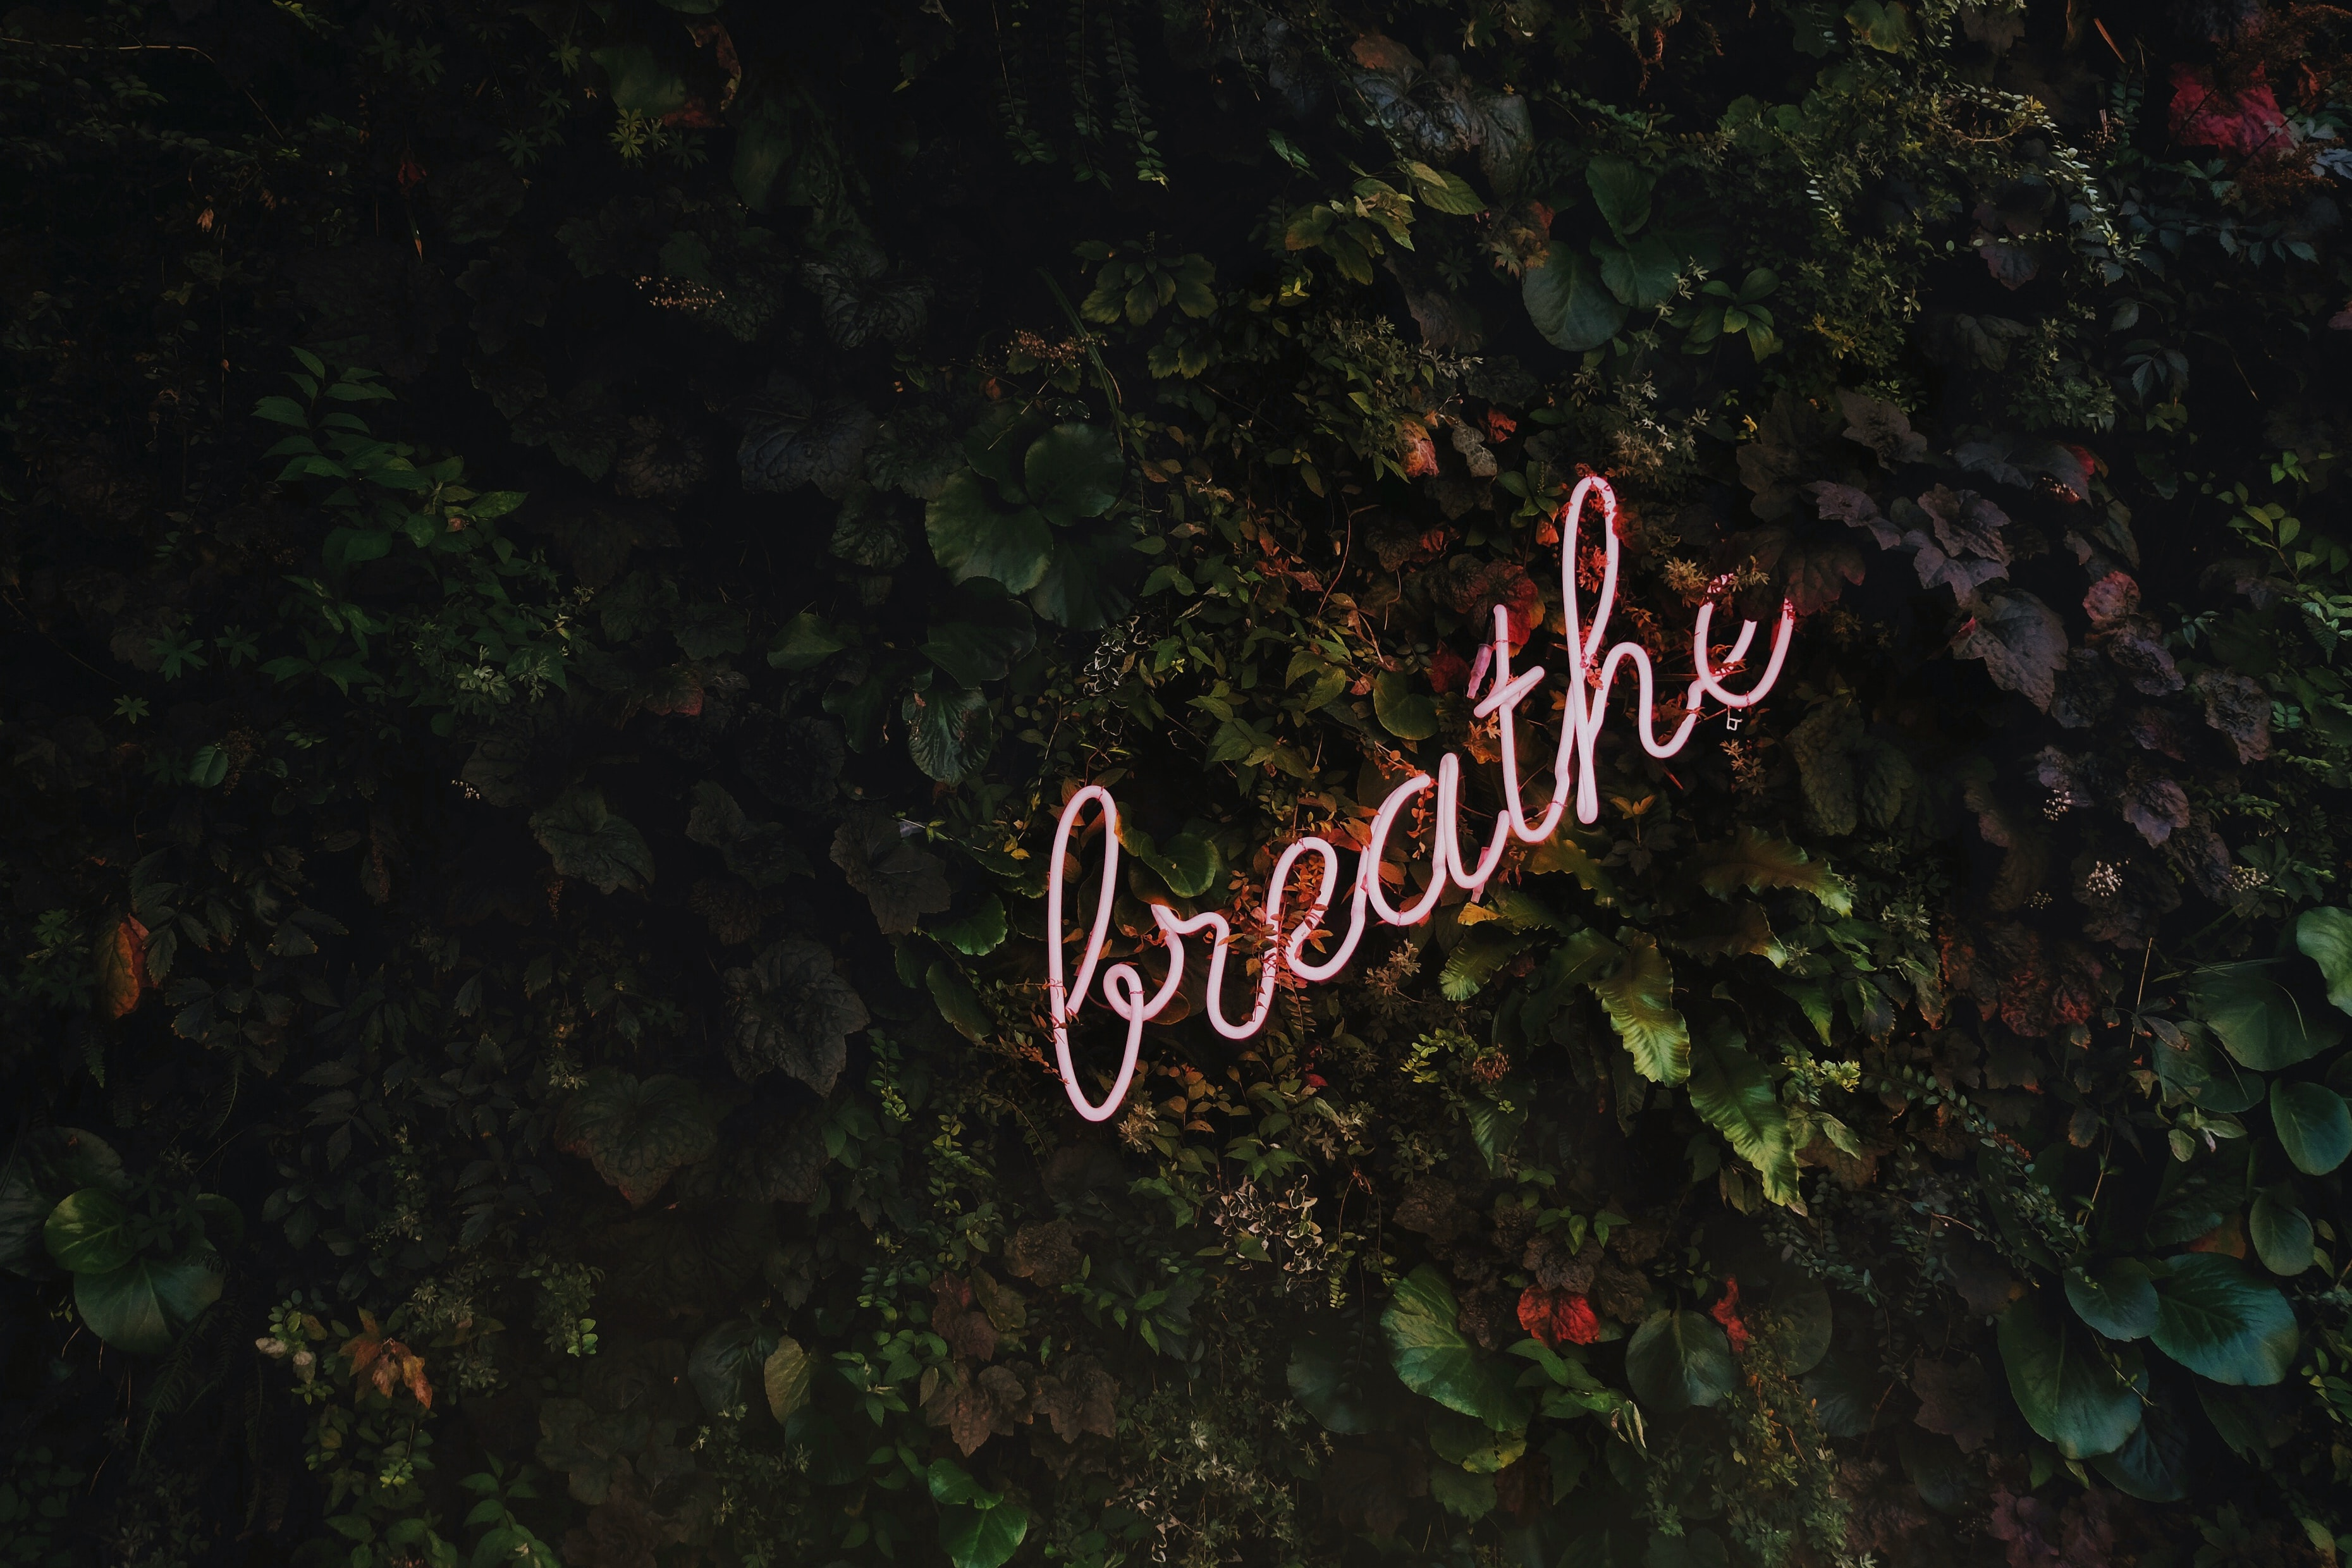 Neon sign on vines that says breathe